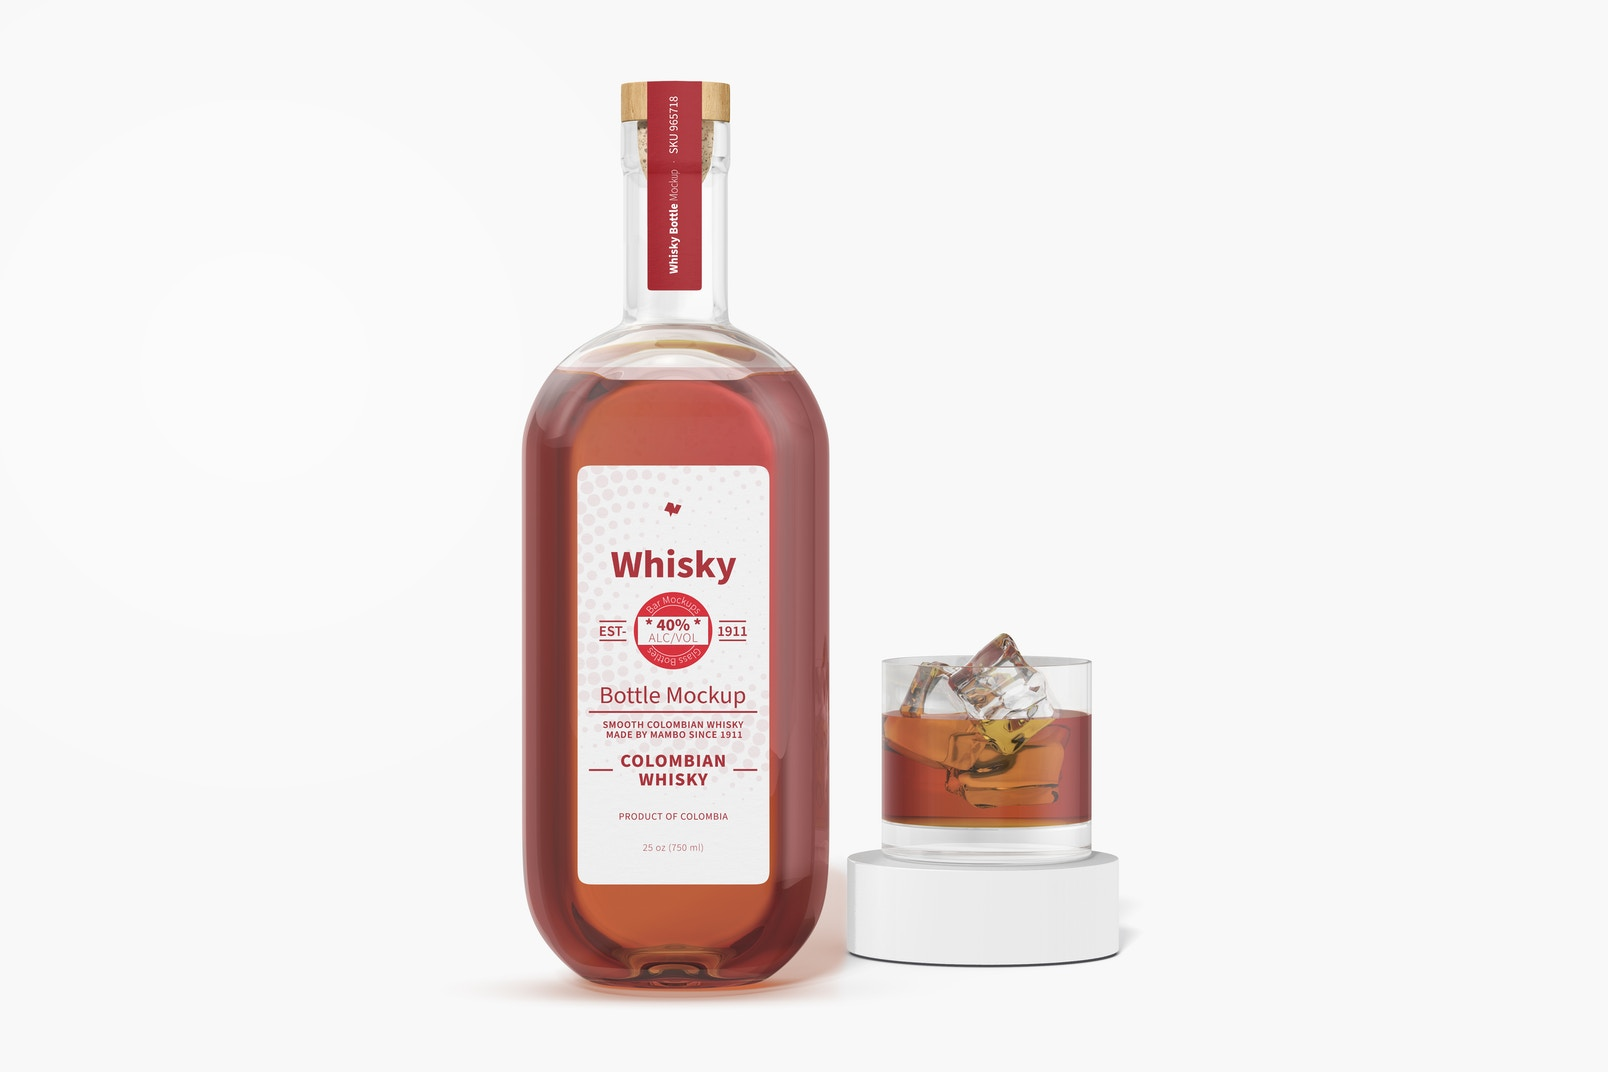 Whisky Bottle with Glass Mockup